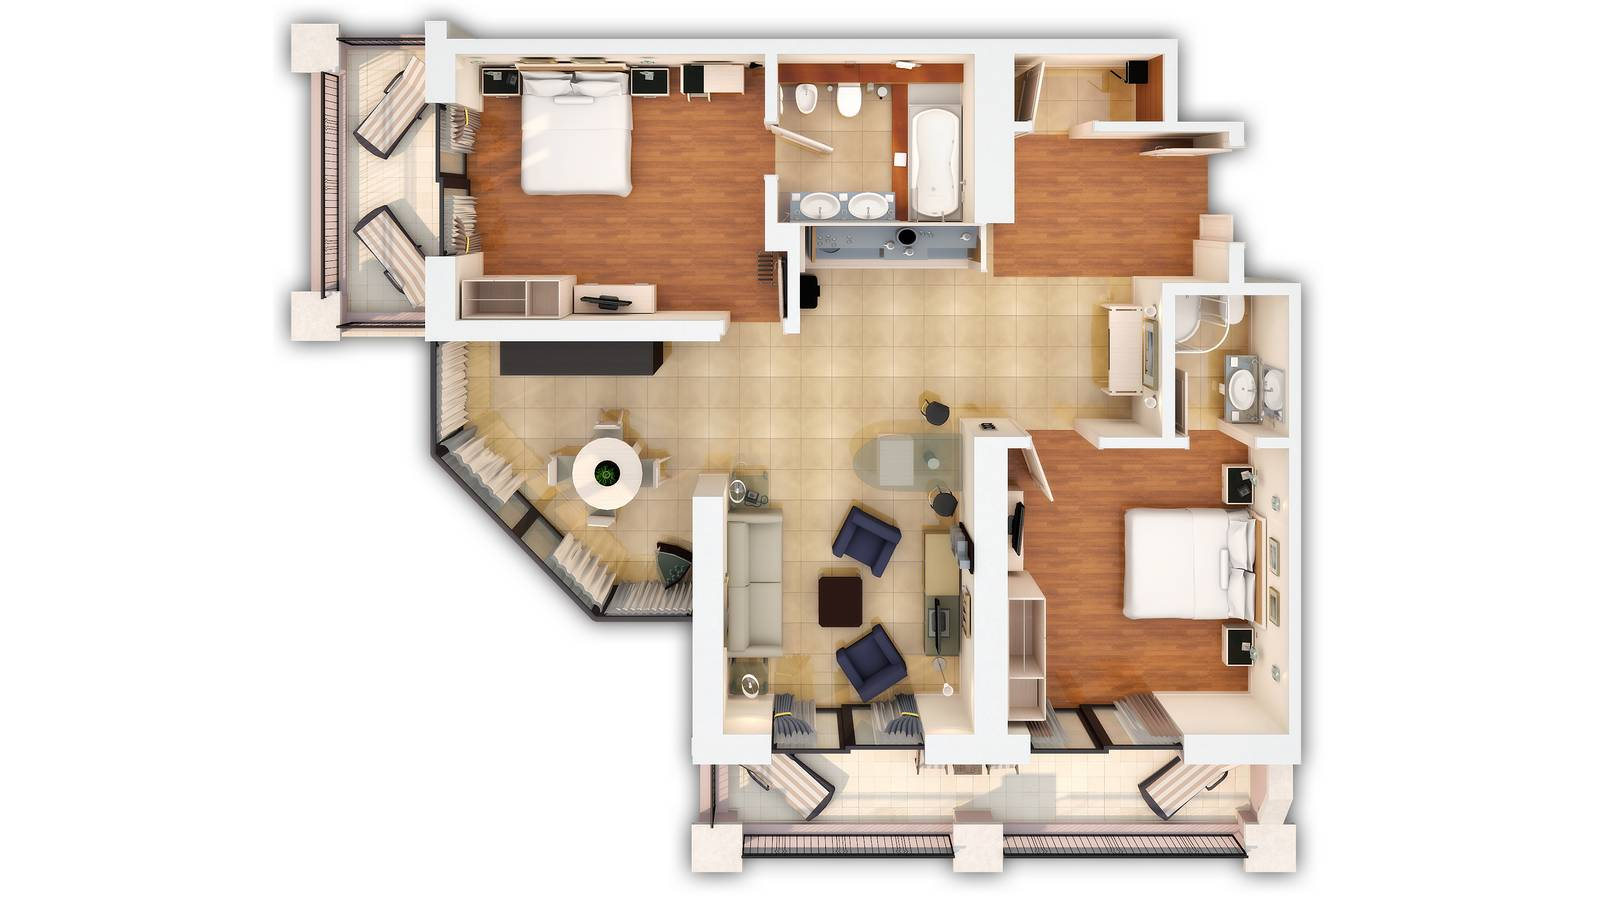 Floor plan of a two bedroom luxury suite